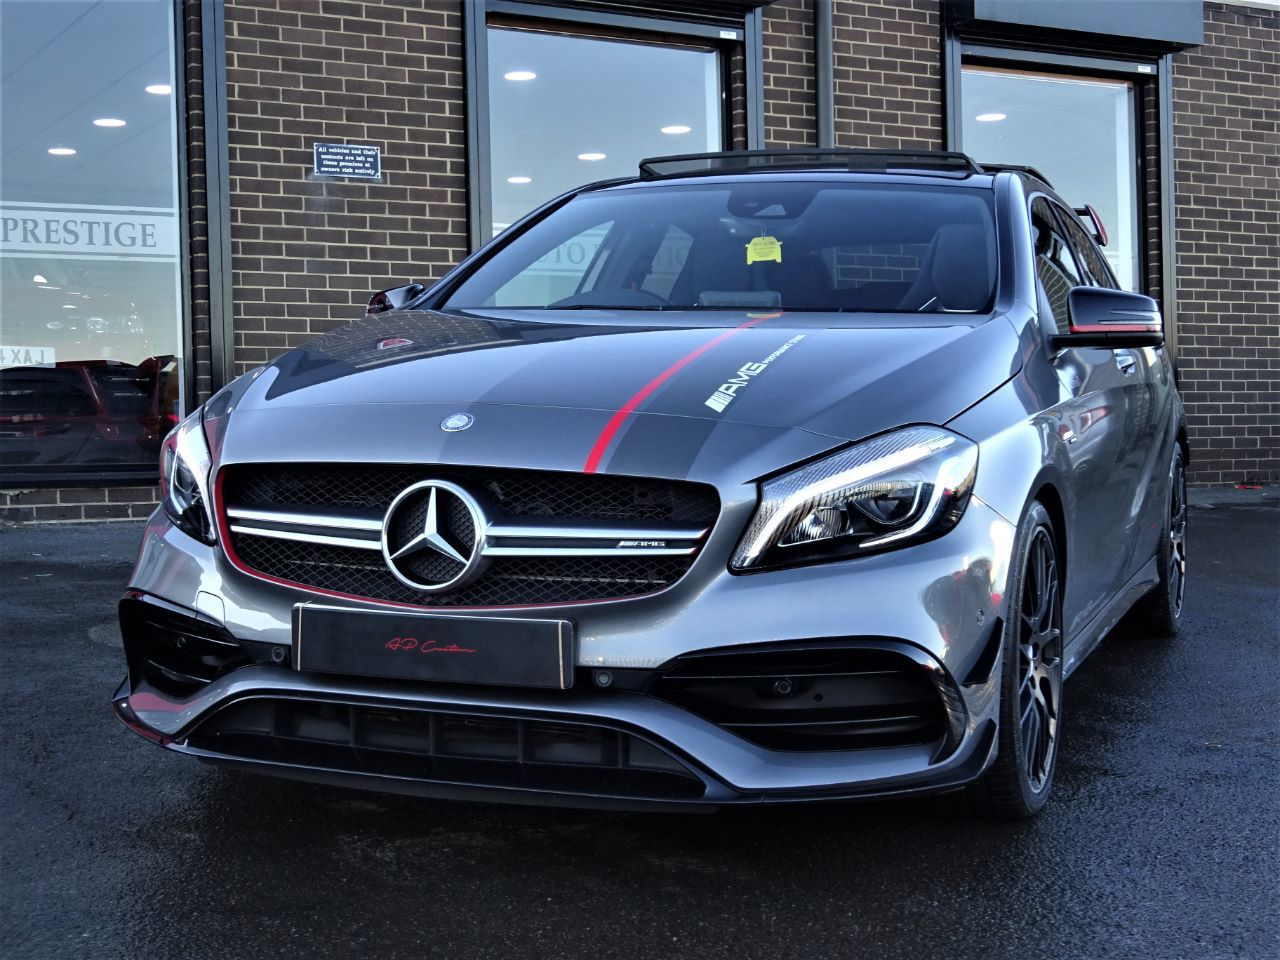 Used mercedes benz cars bradford second hand cars west for Mercedes benz a45 amg